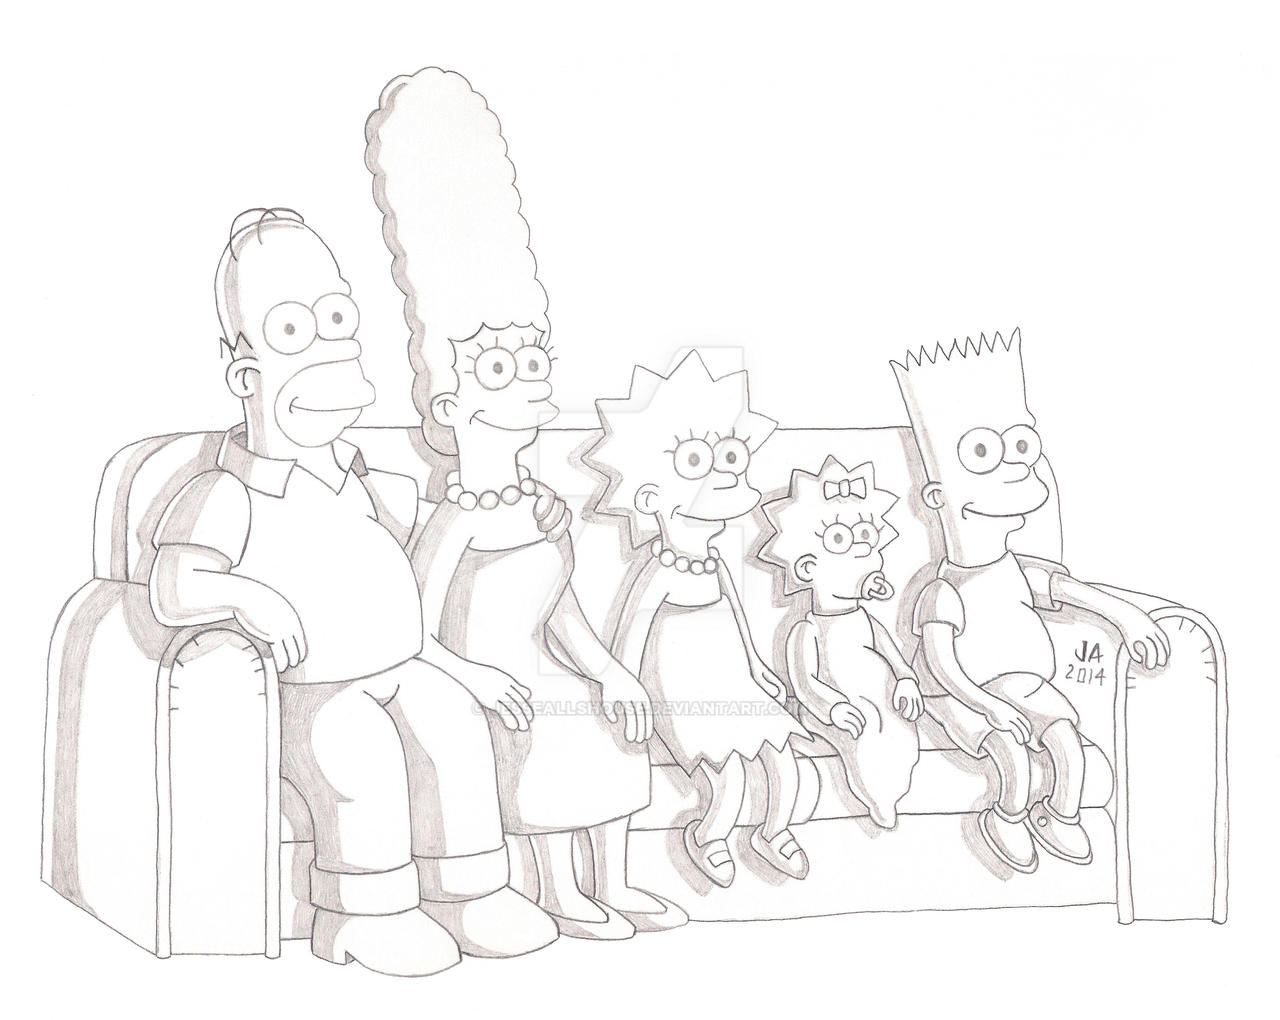 The Simpsons Sketch